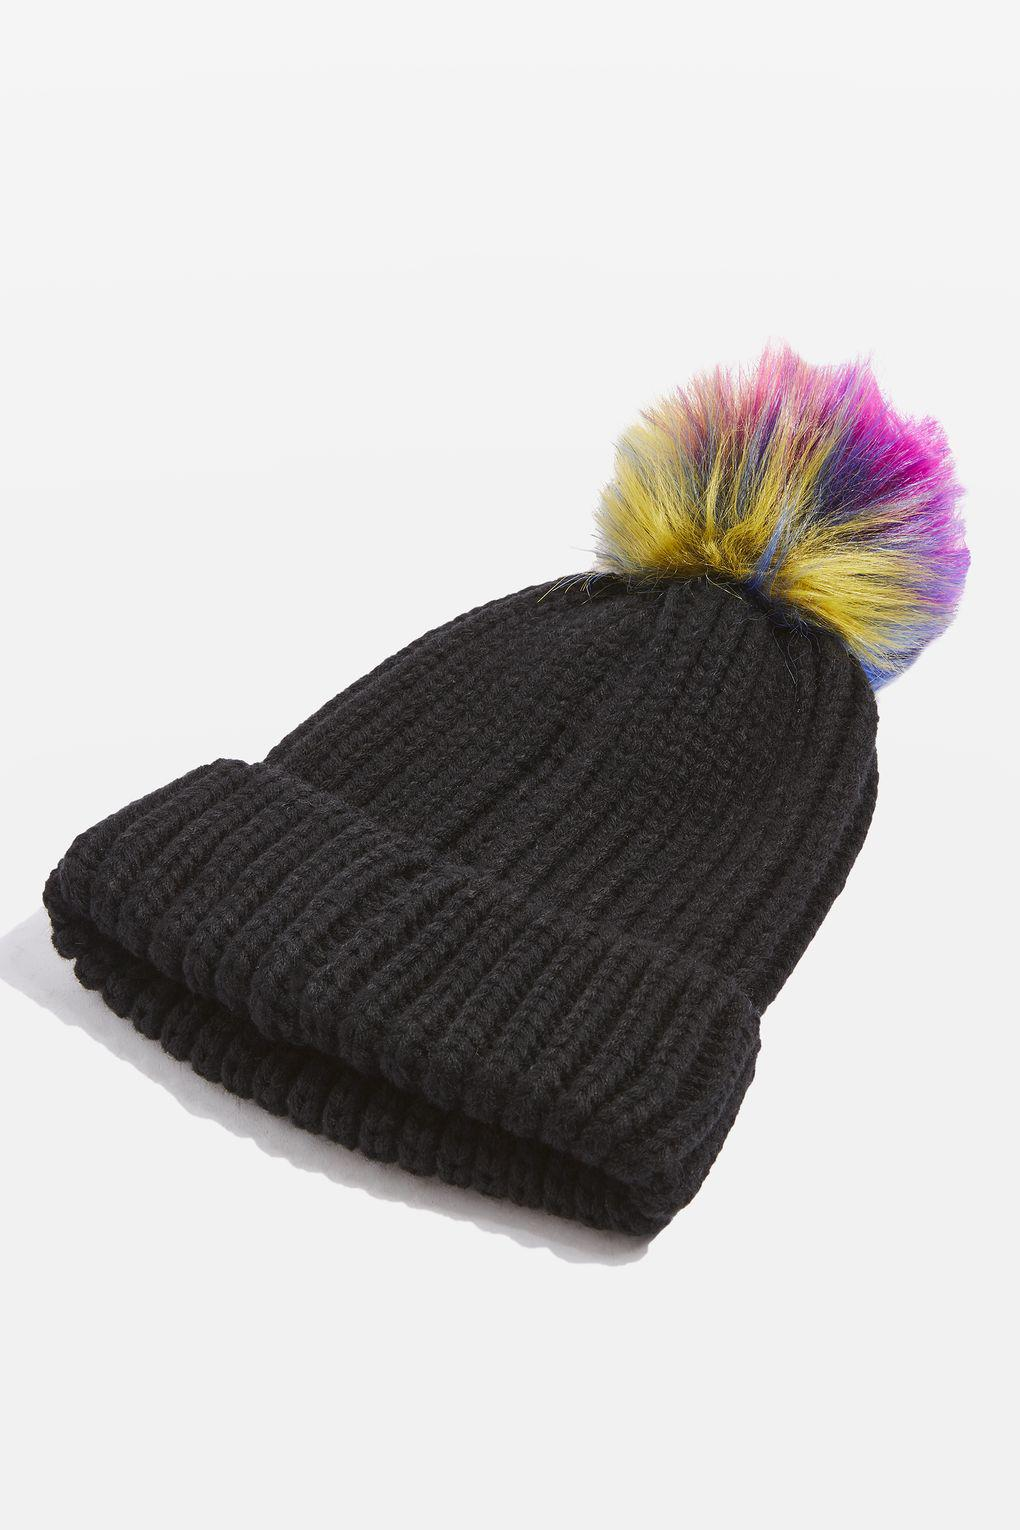 1a96fac9758 Lyst - TOPSHOP Rainbow Pom Pom Ribbed Beanie Hat in Black